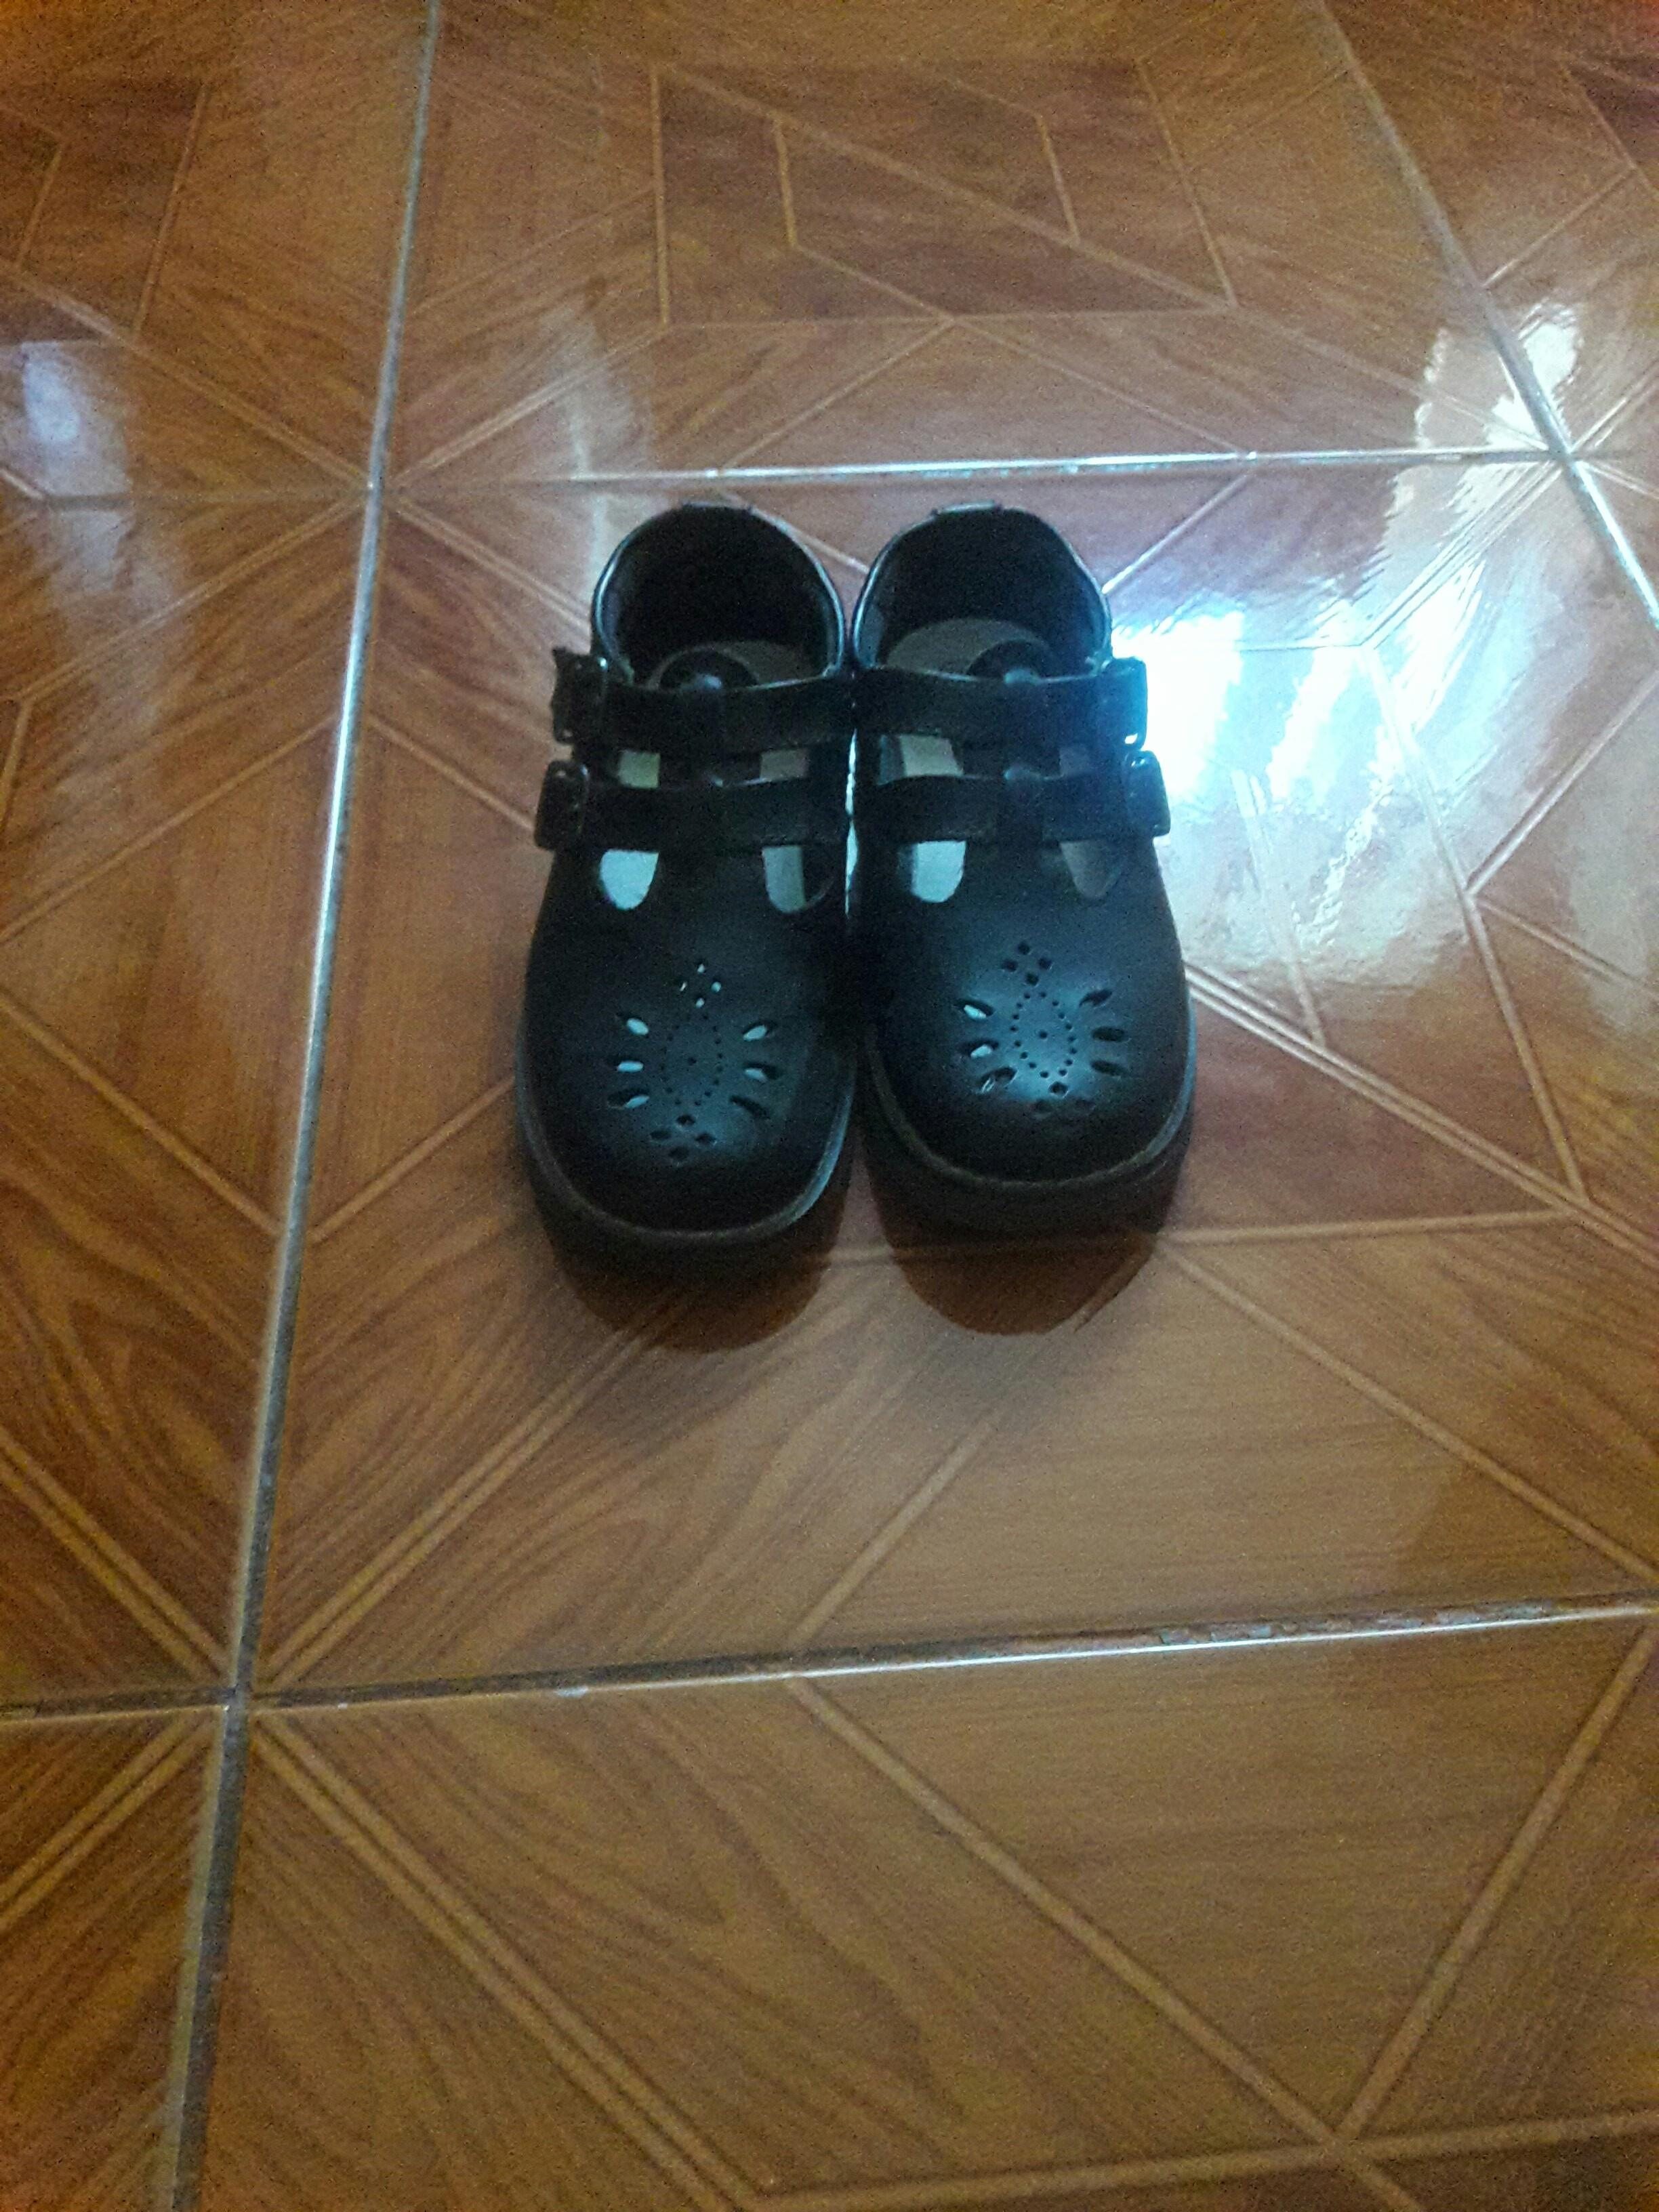 Payless School Shoes for Sale, Babies